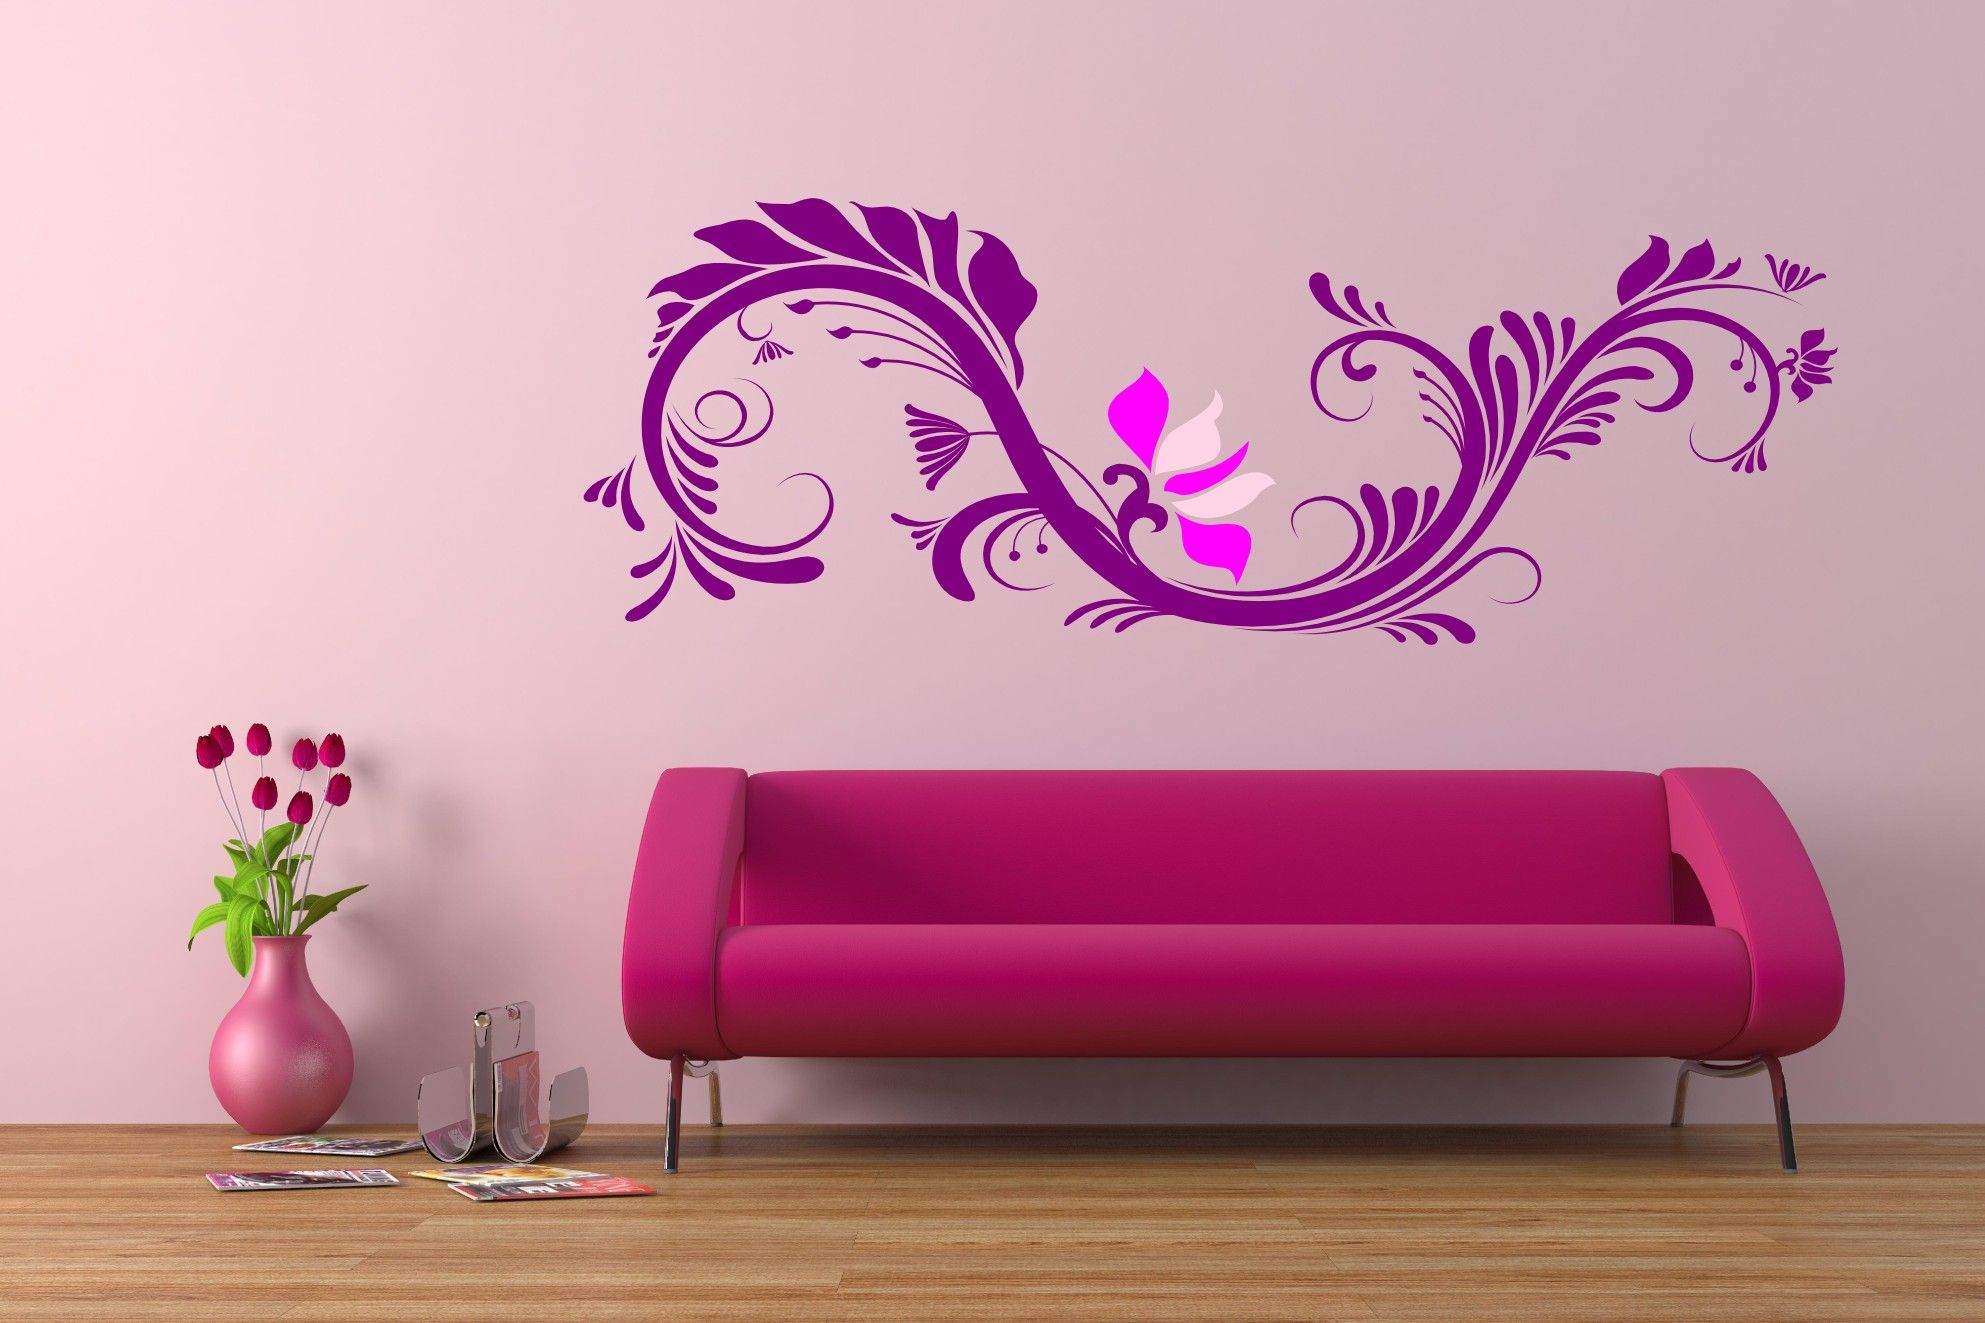 Modern And Stylish Pink Wall Decoration In Living Room Http Custom Paint Design For Living Room Walls Inspiration Design